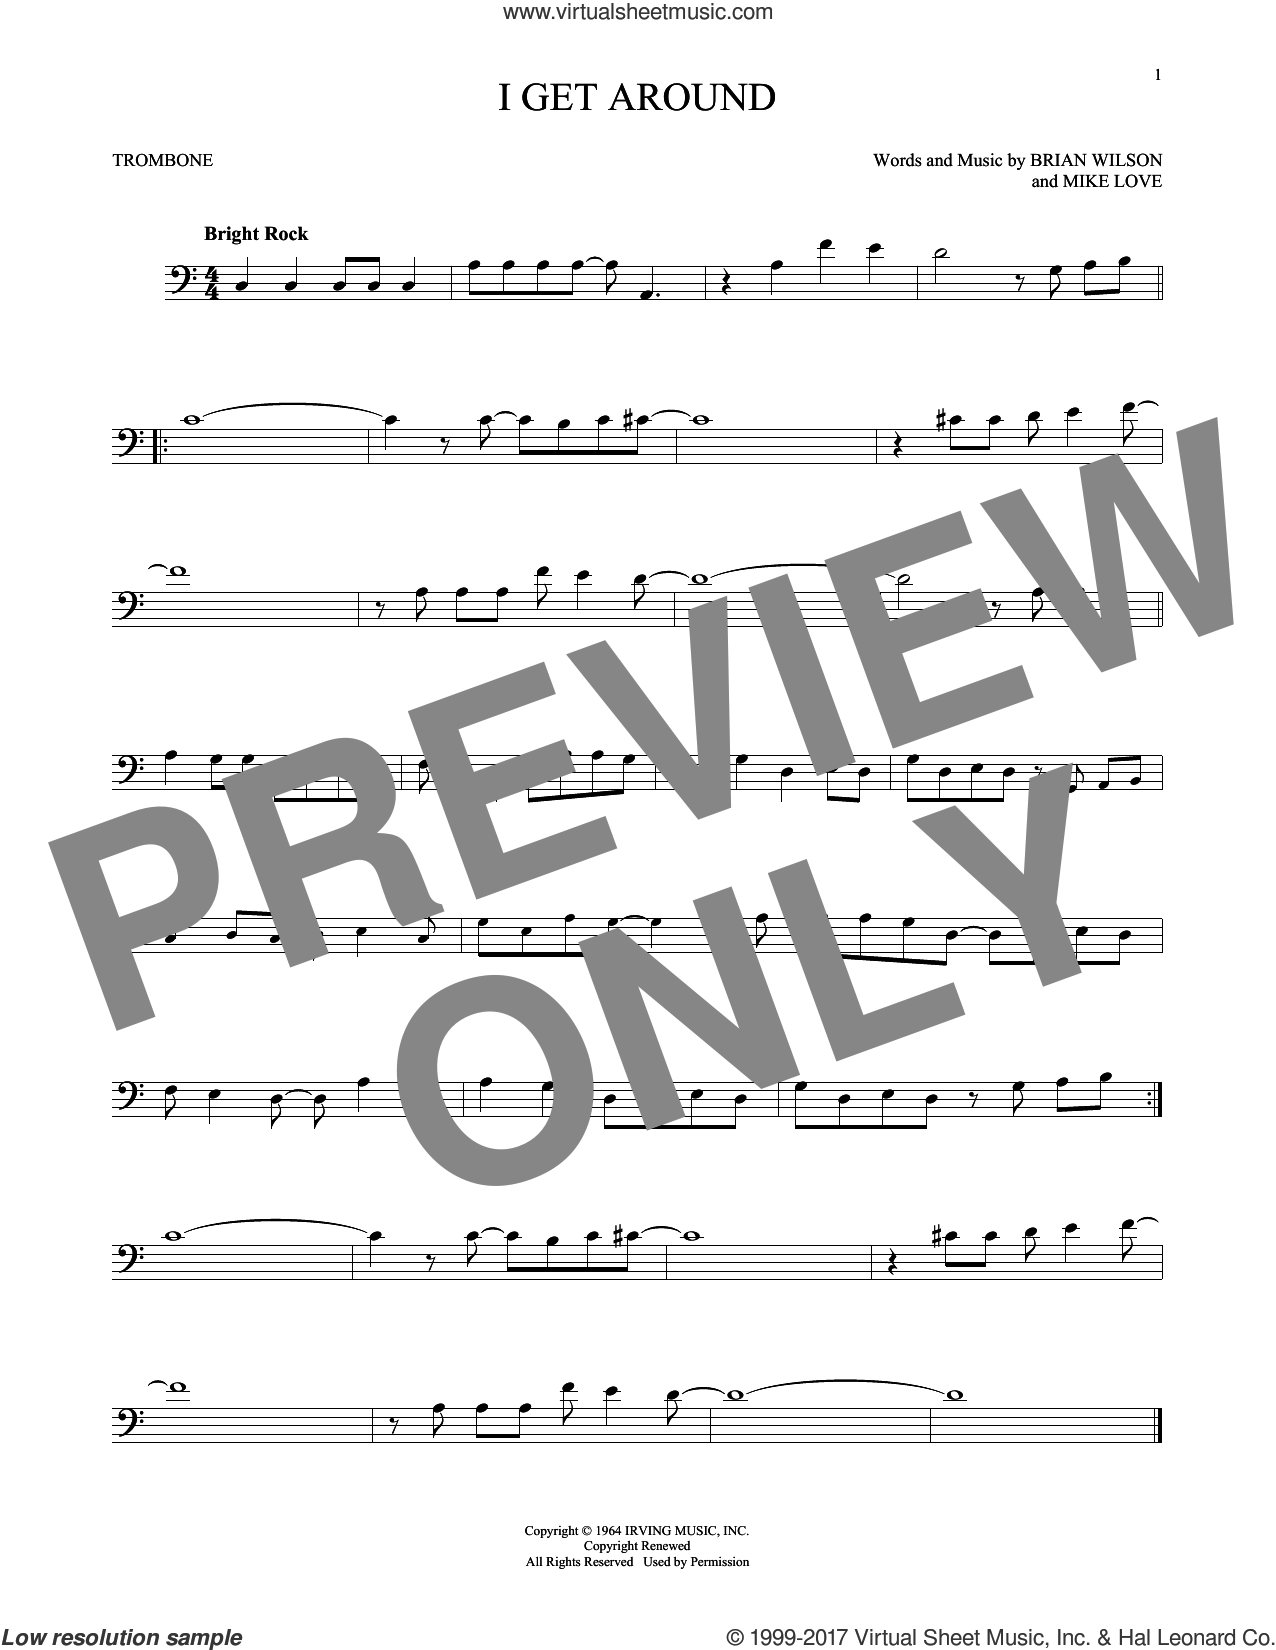 I Get Around sheet music for trombone solo by The Beach Boys, Brian Wilson and Mike Love, intermediate skill level